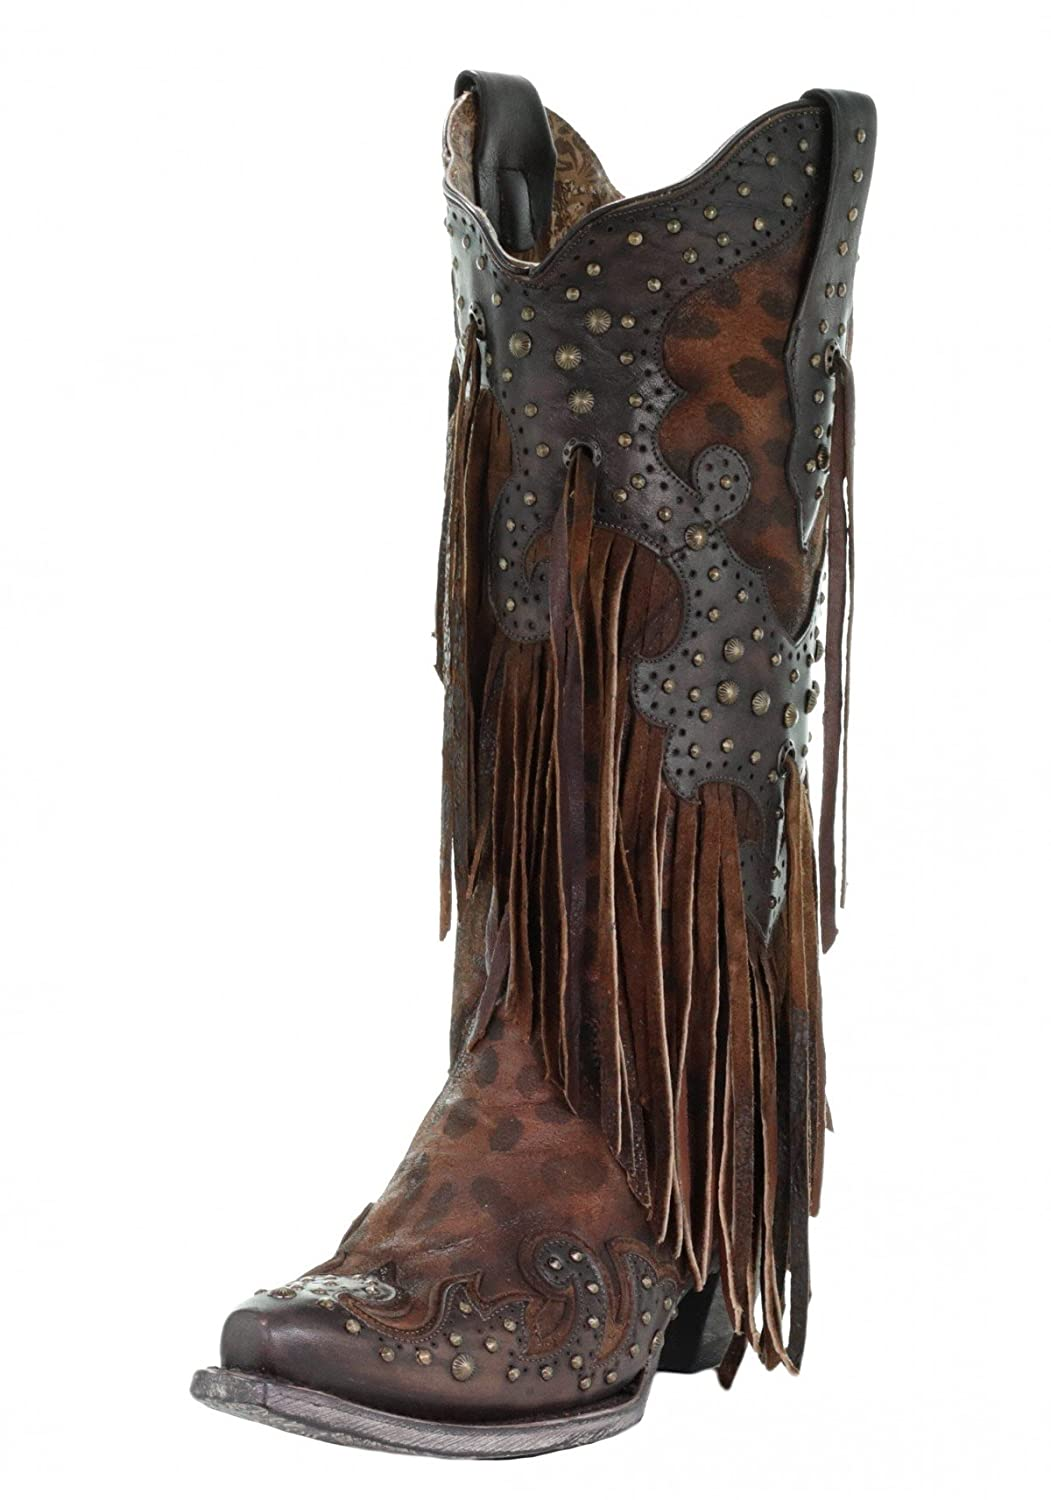 CORRAL A3618 Brown Leopard Fringe and Studs Boots B07CQQMWQC 7.5 B(M) US